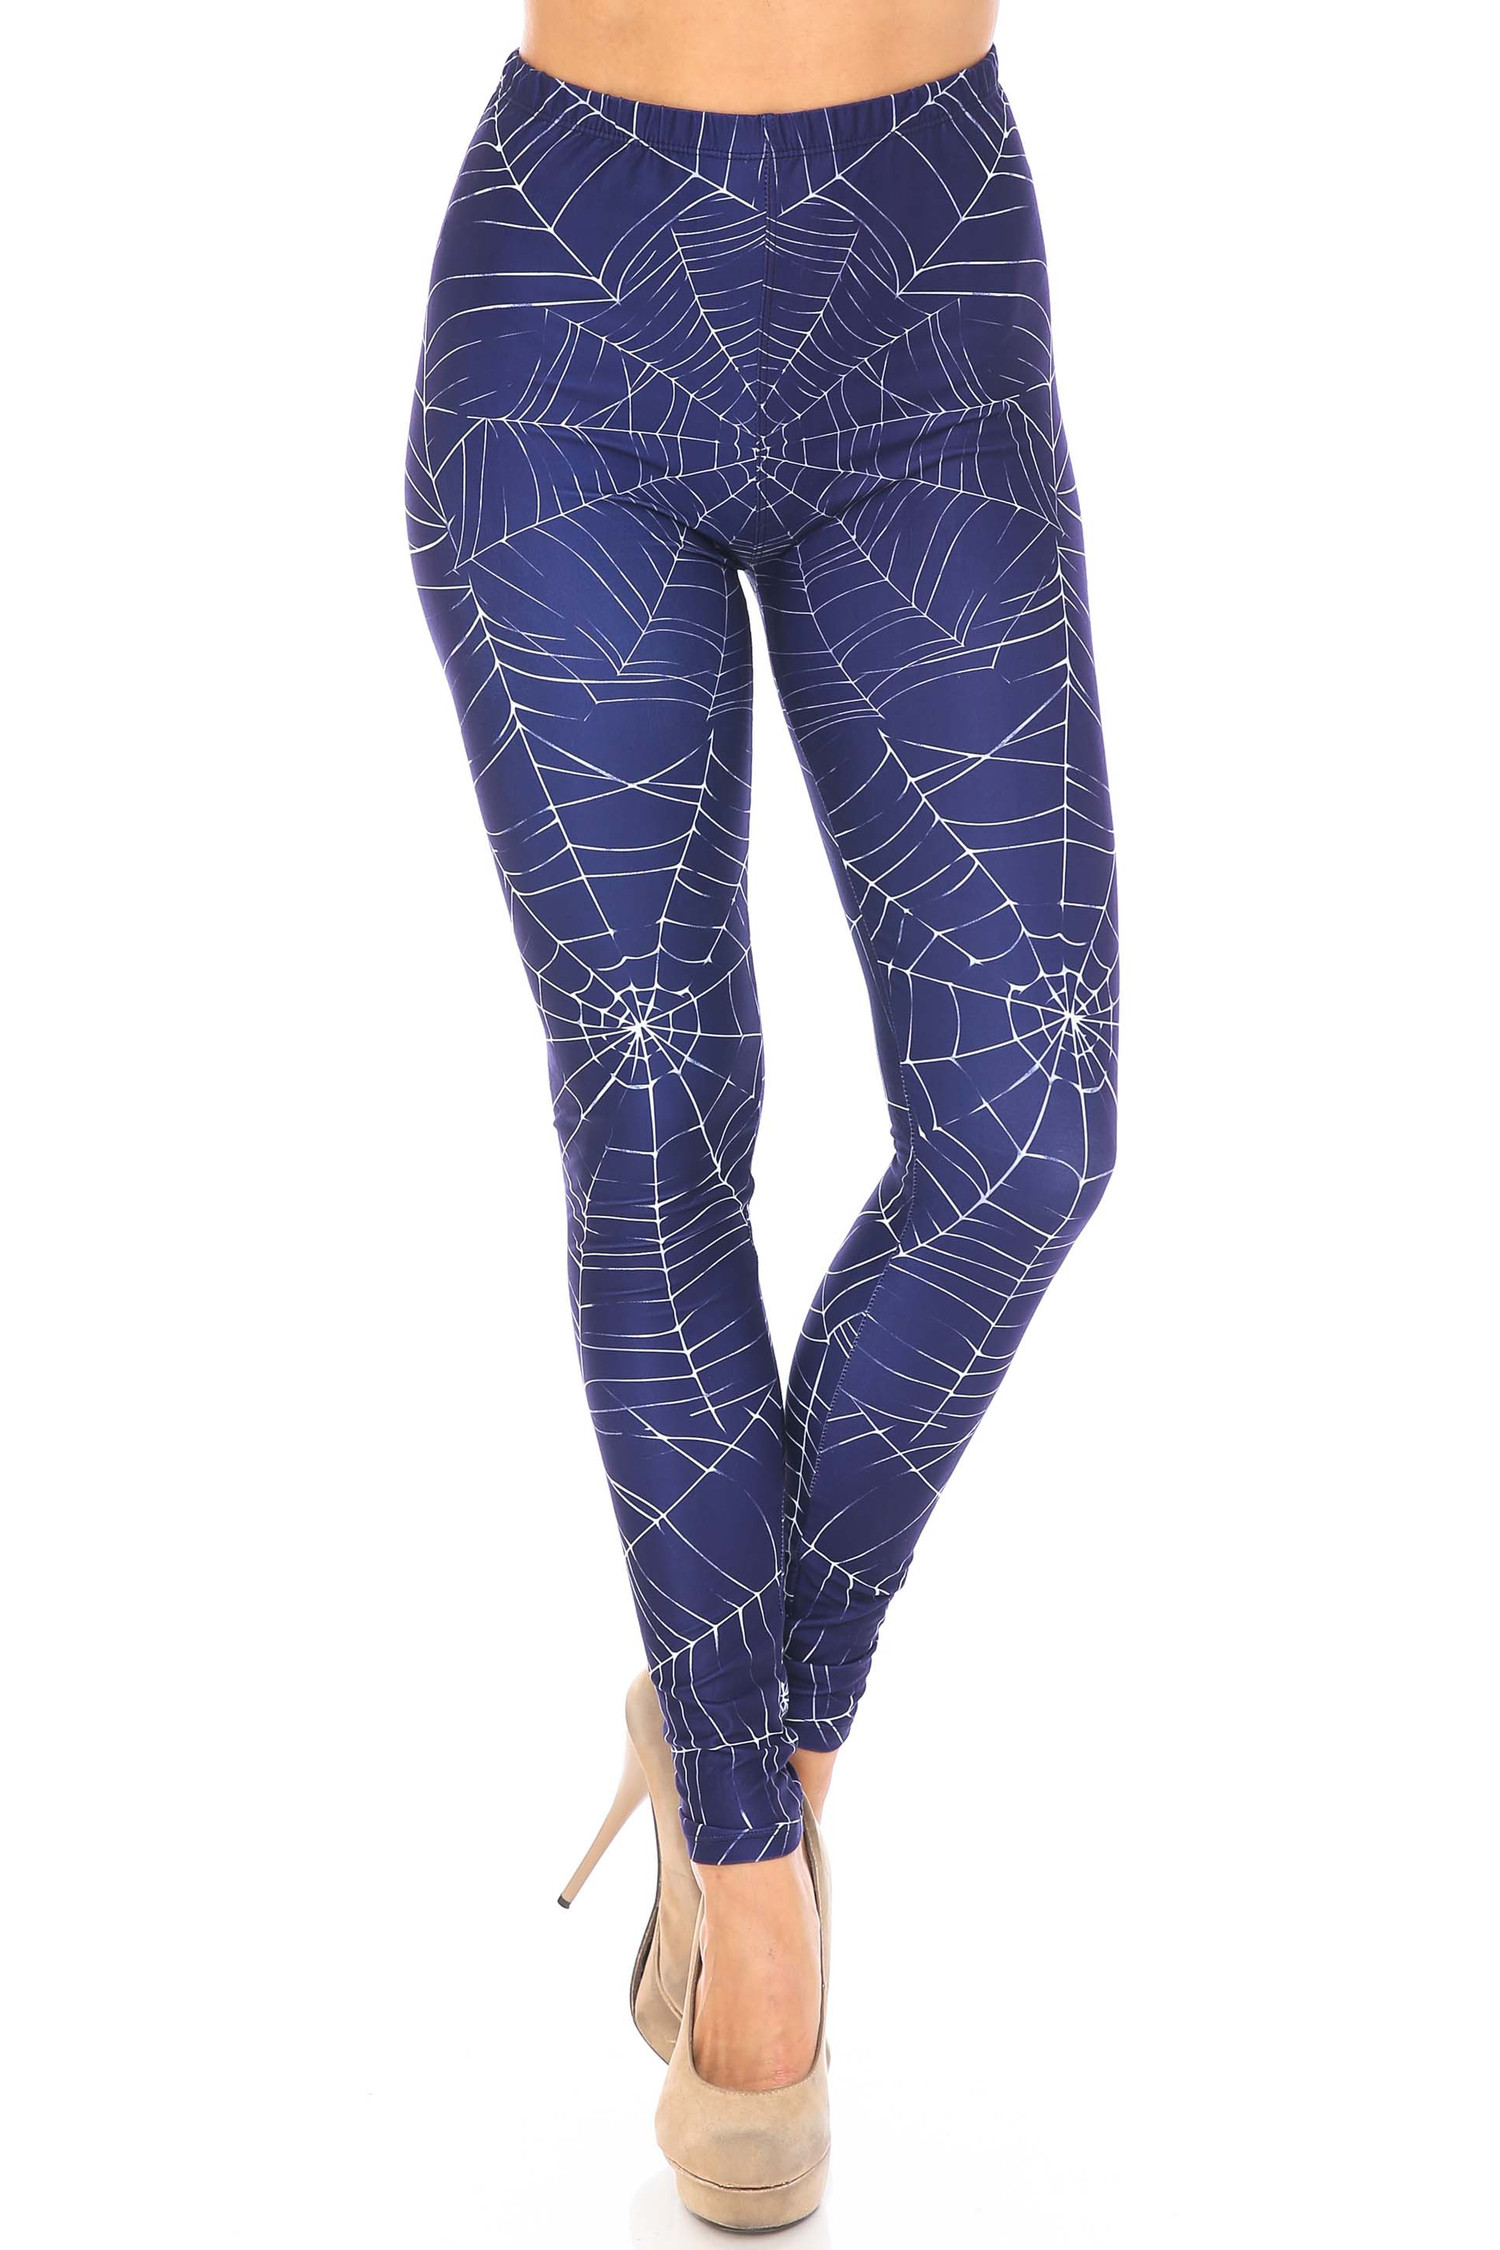 Creamy Soft Spiderwebs Halloween Plus Size Leggings - By USA Fashion™